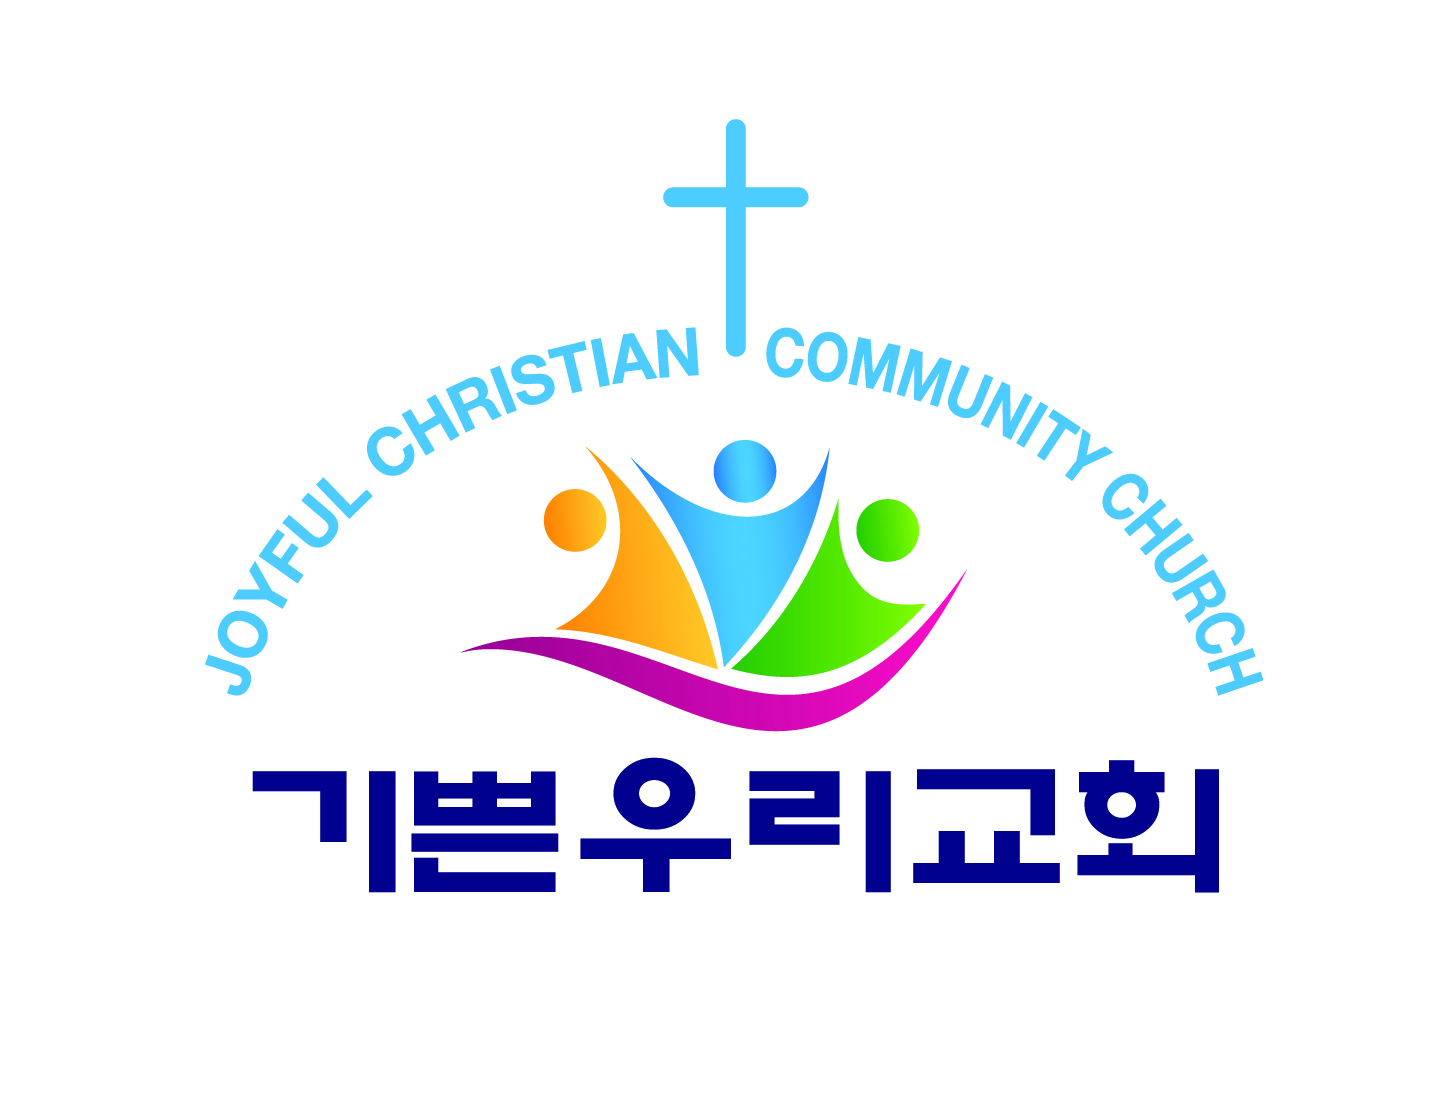 Joyful Christian Community Church